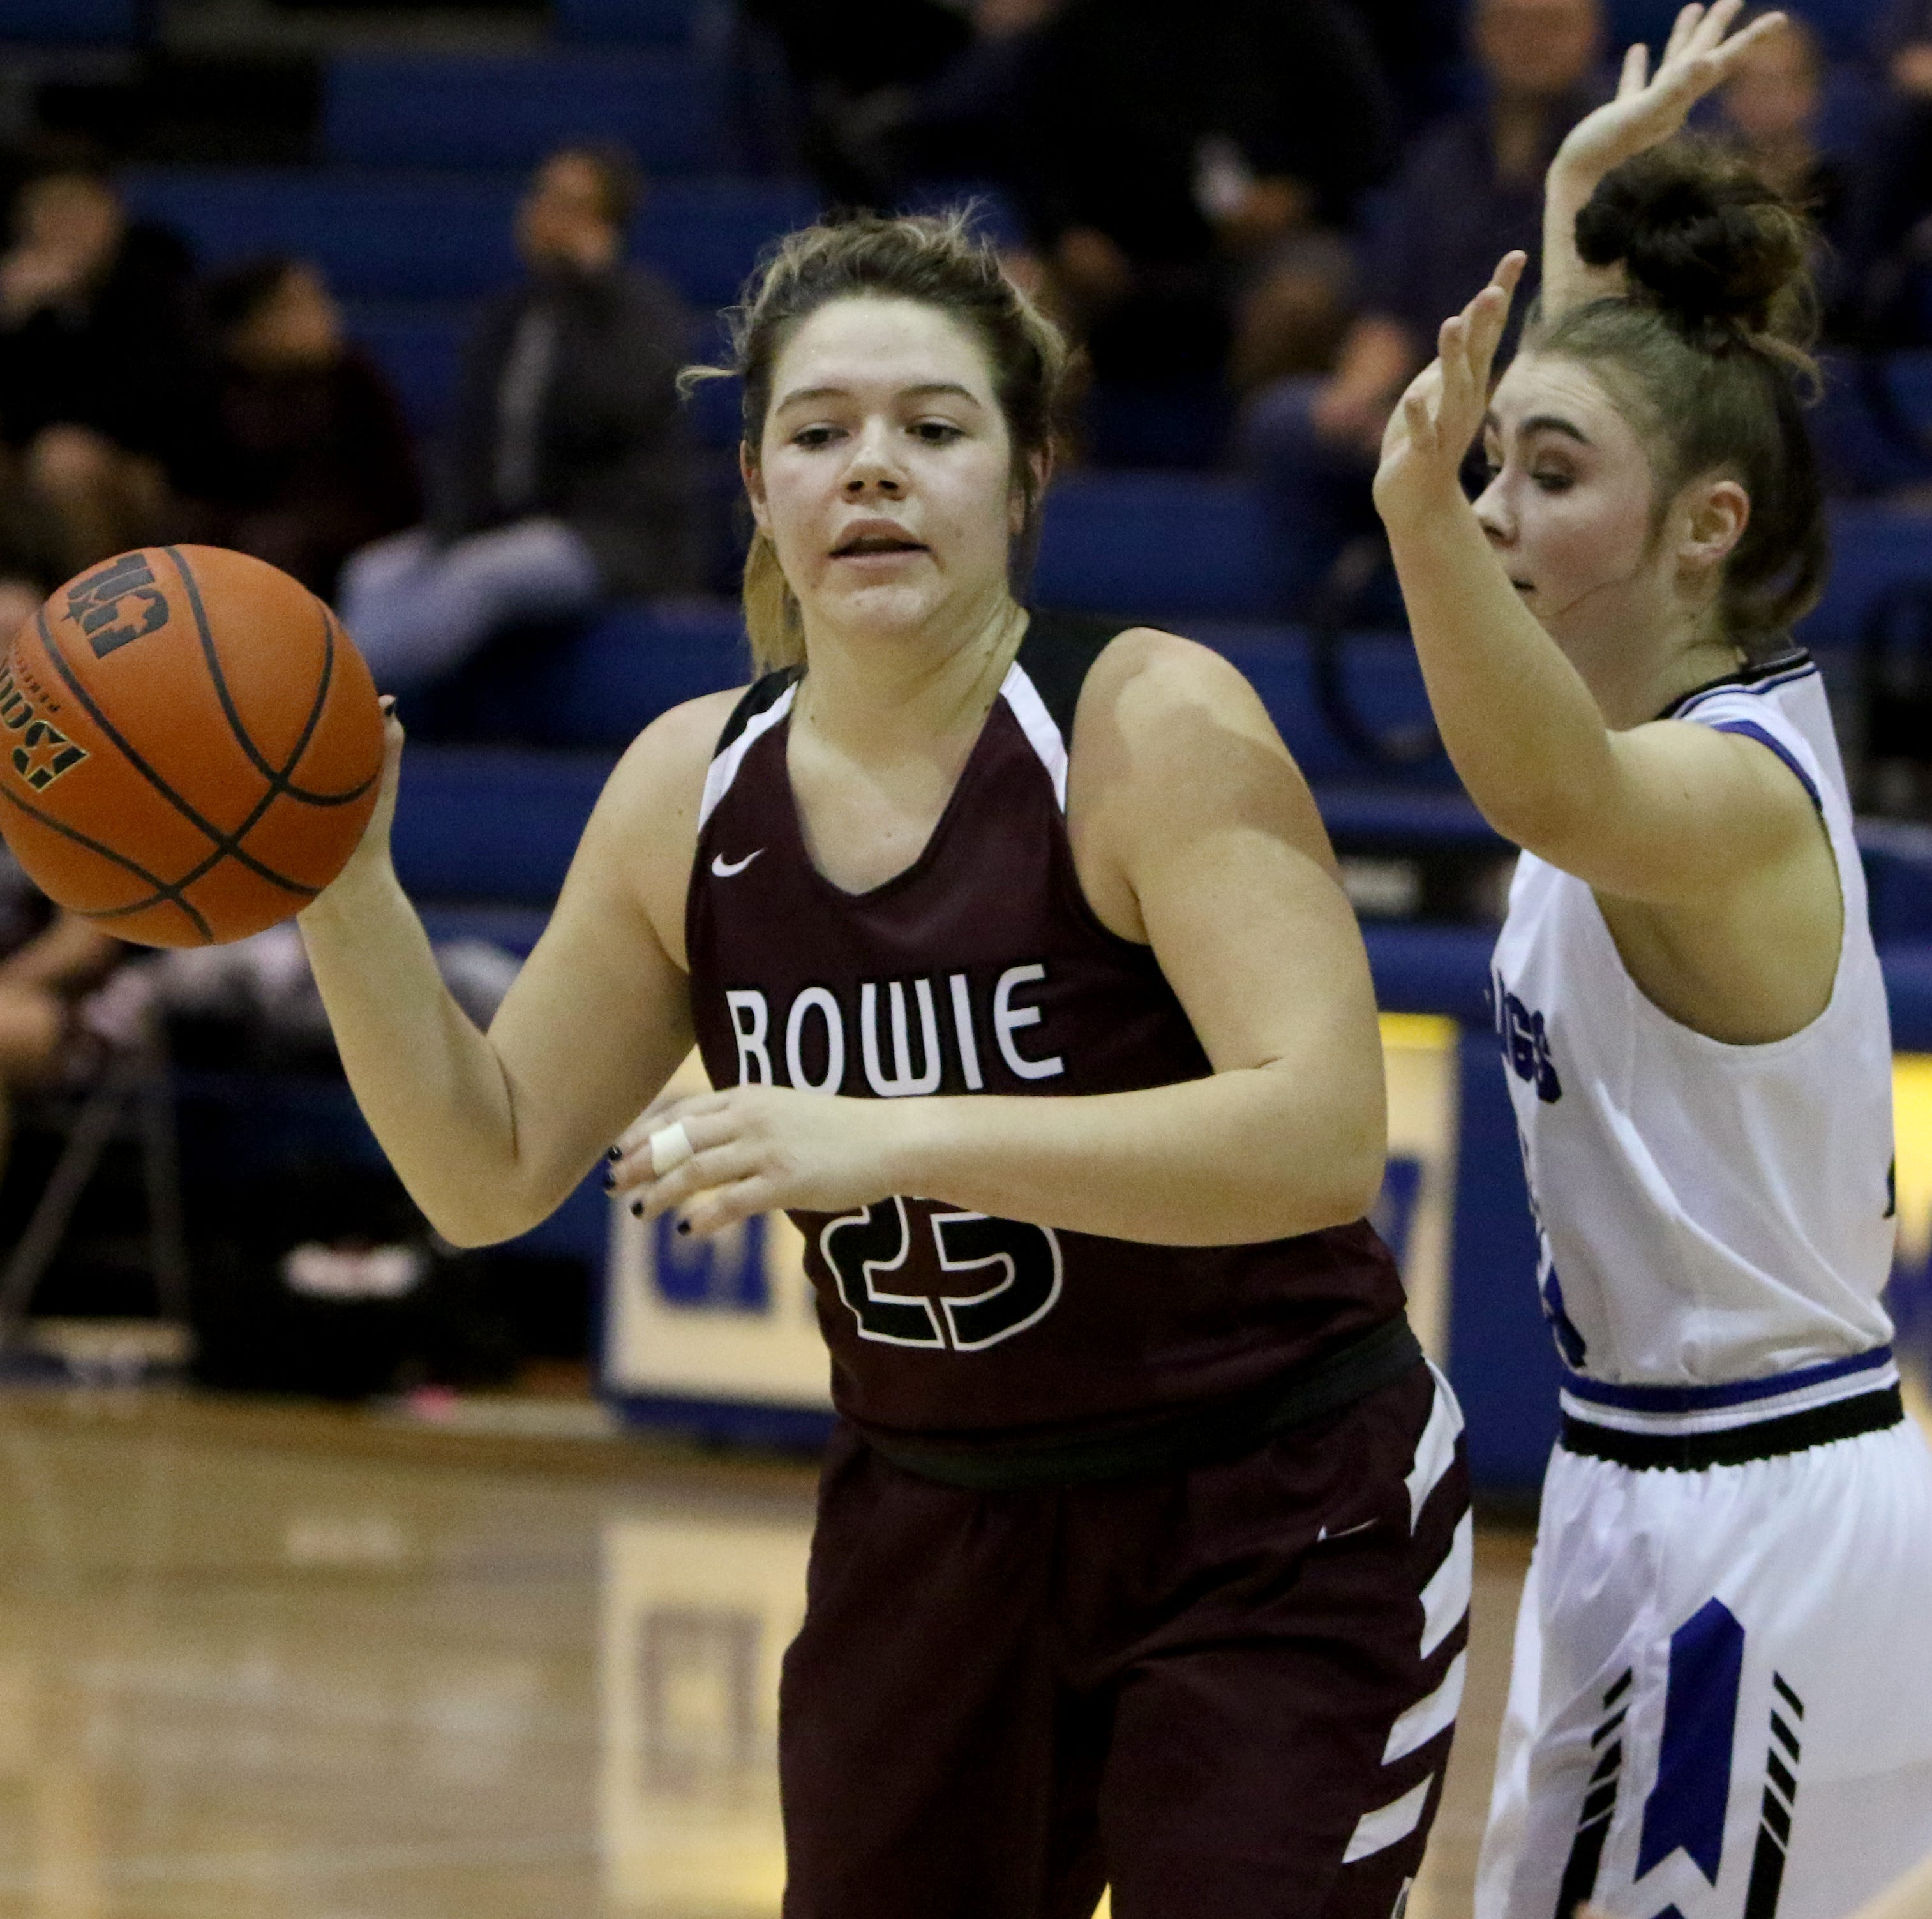 Area girls basketball primer: Nocona, Bowie sit 1-2; Vote for Player of the Week